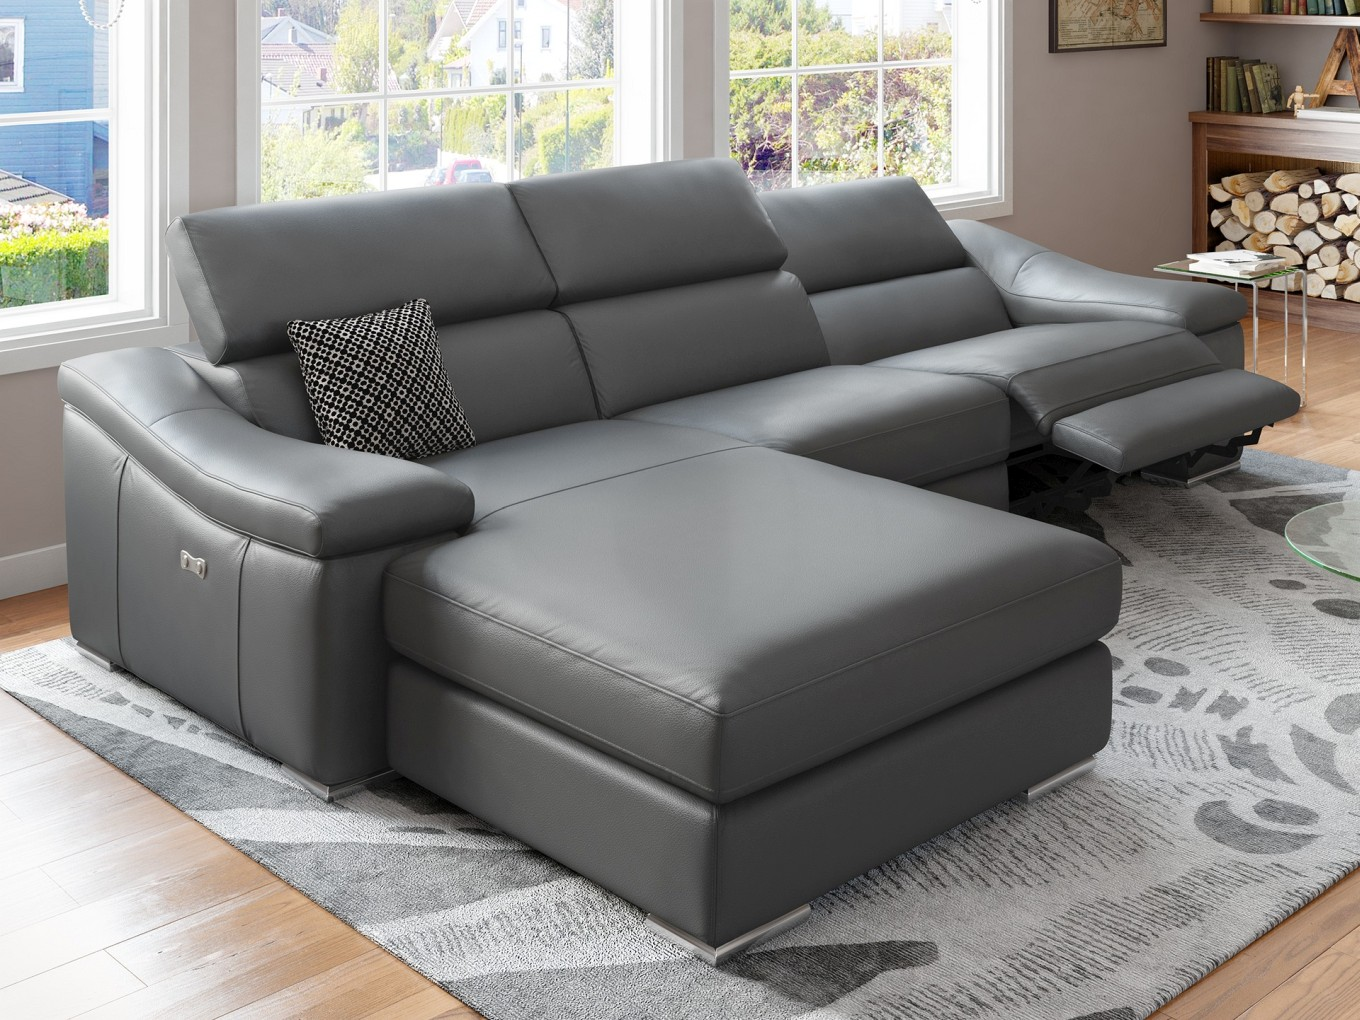 Leder couch ecksofa garnitur kino tv funktions sofa relax for Sofa garnitur